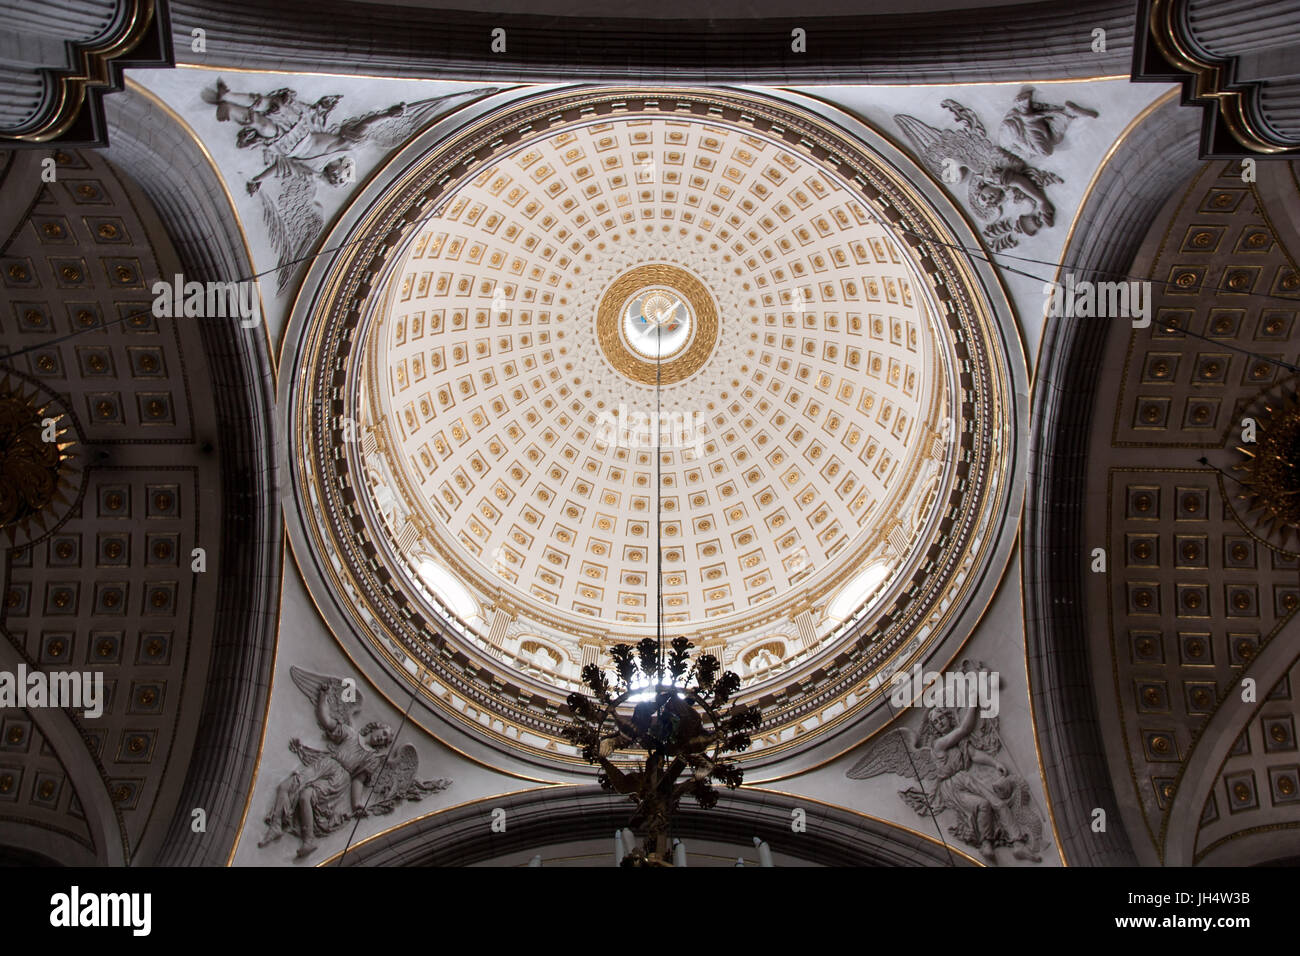 Cathedral dome with angels in Puebla Mexico - Stock Image